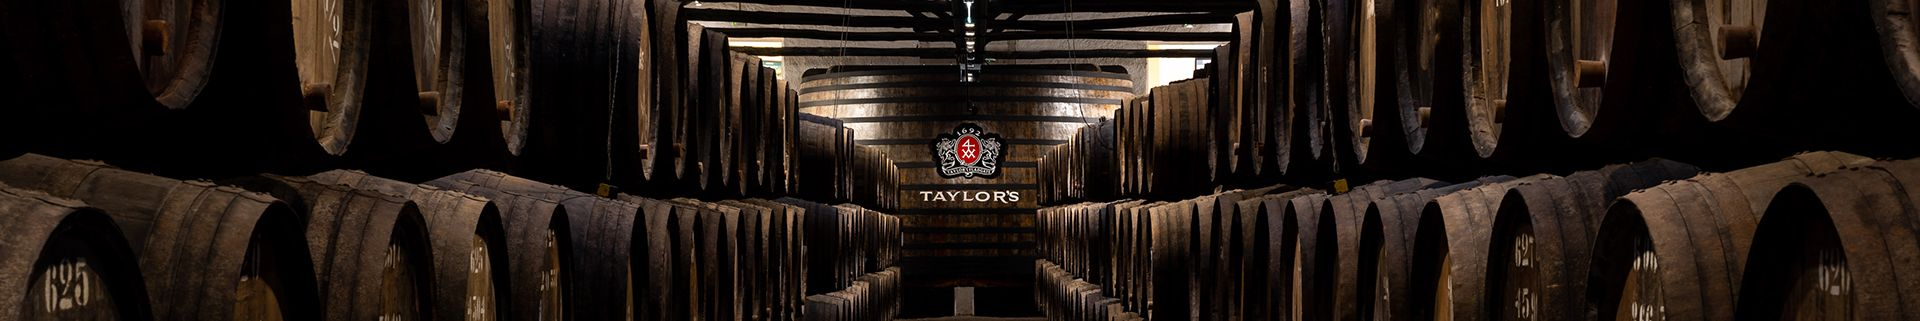 Visit Taylor Fladgate Cellars in Porto, Portugal